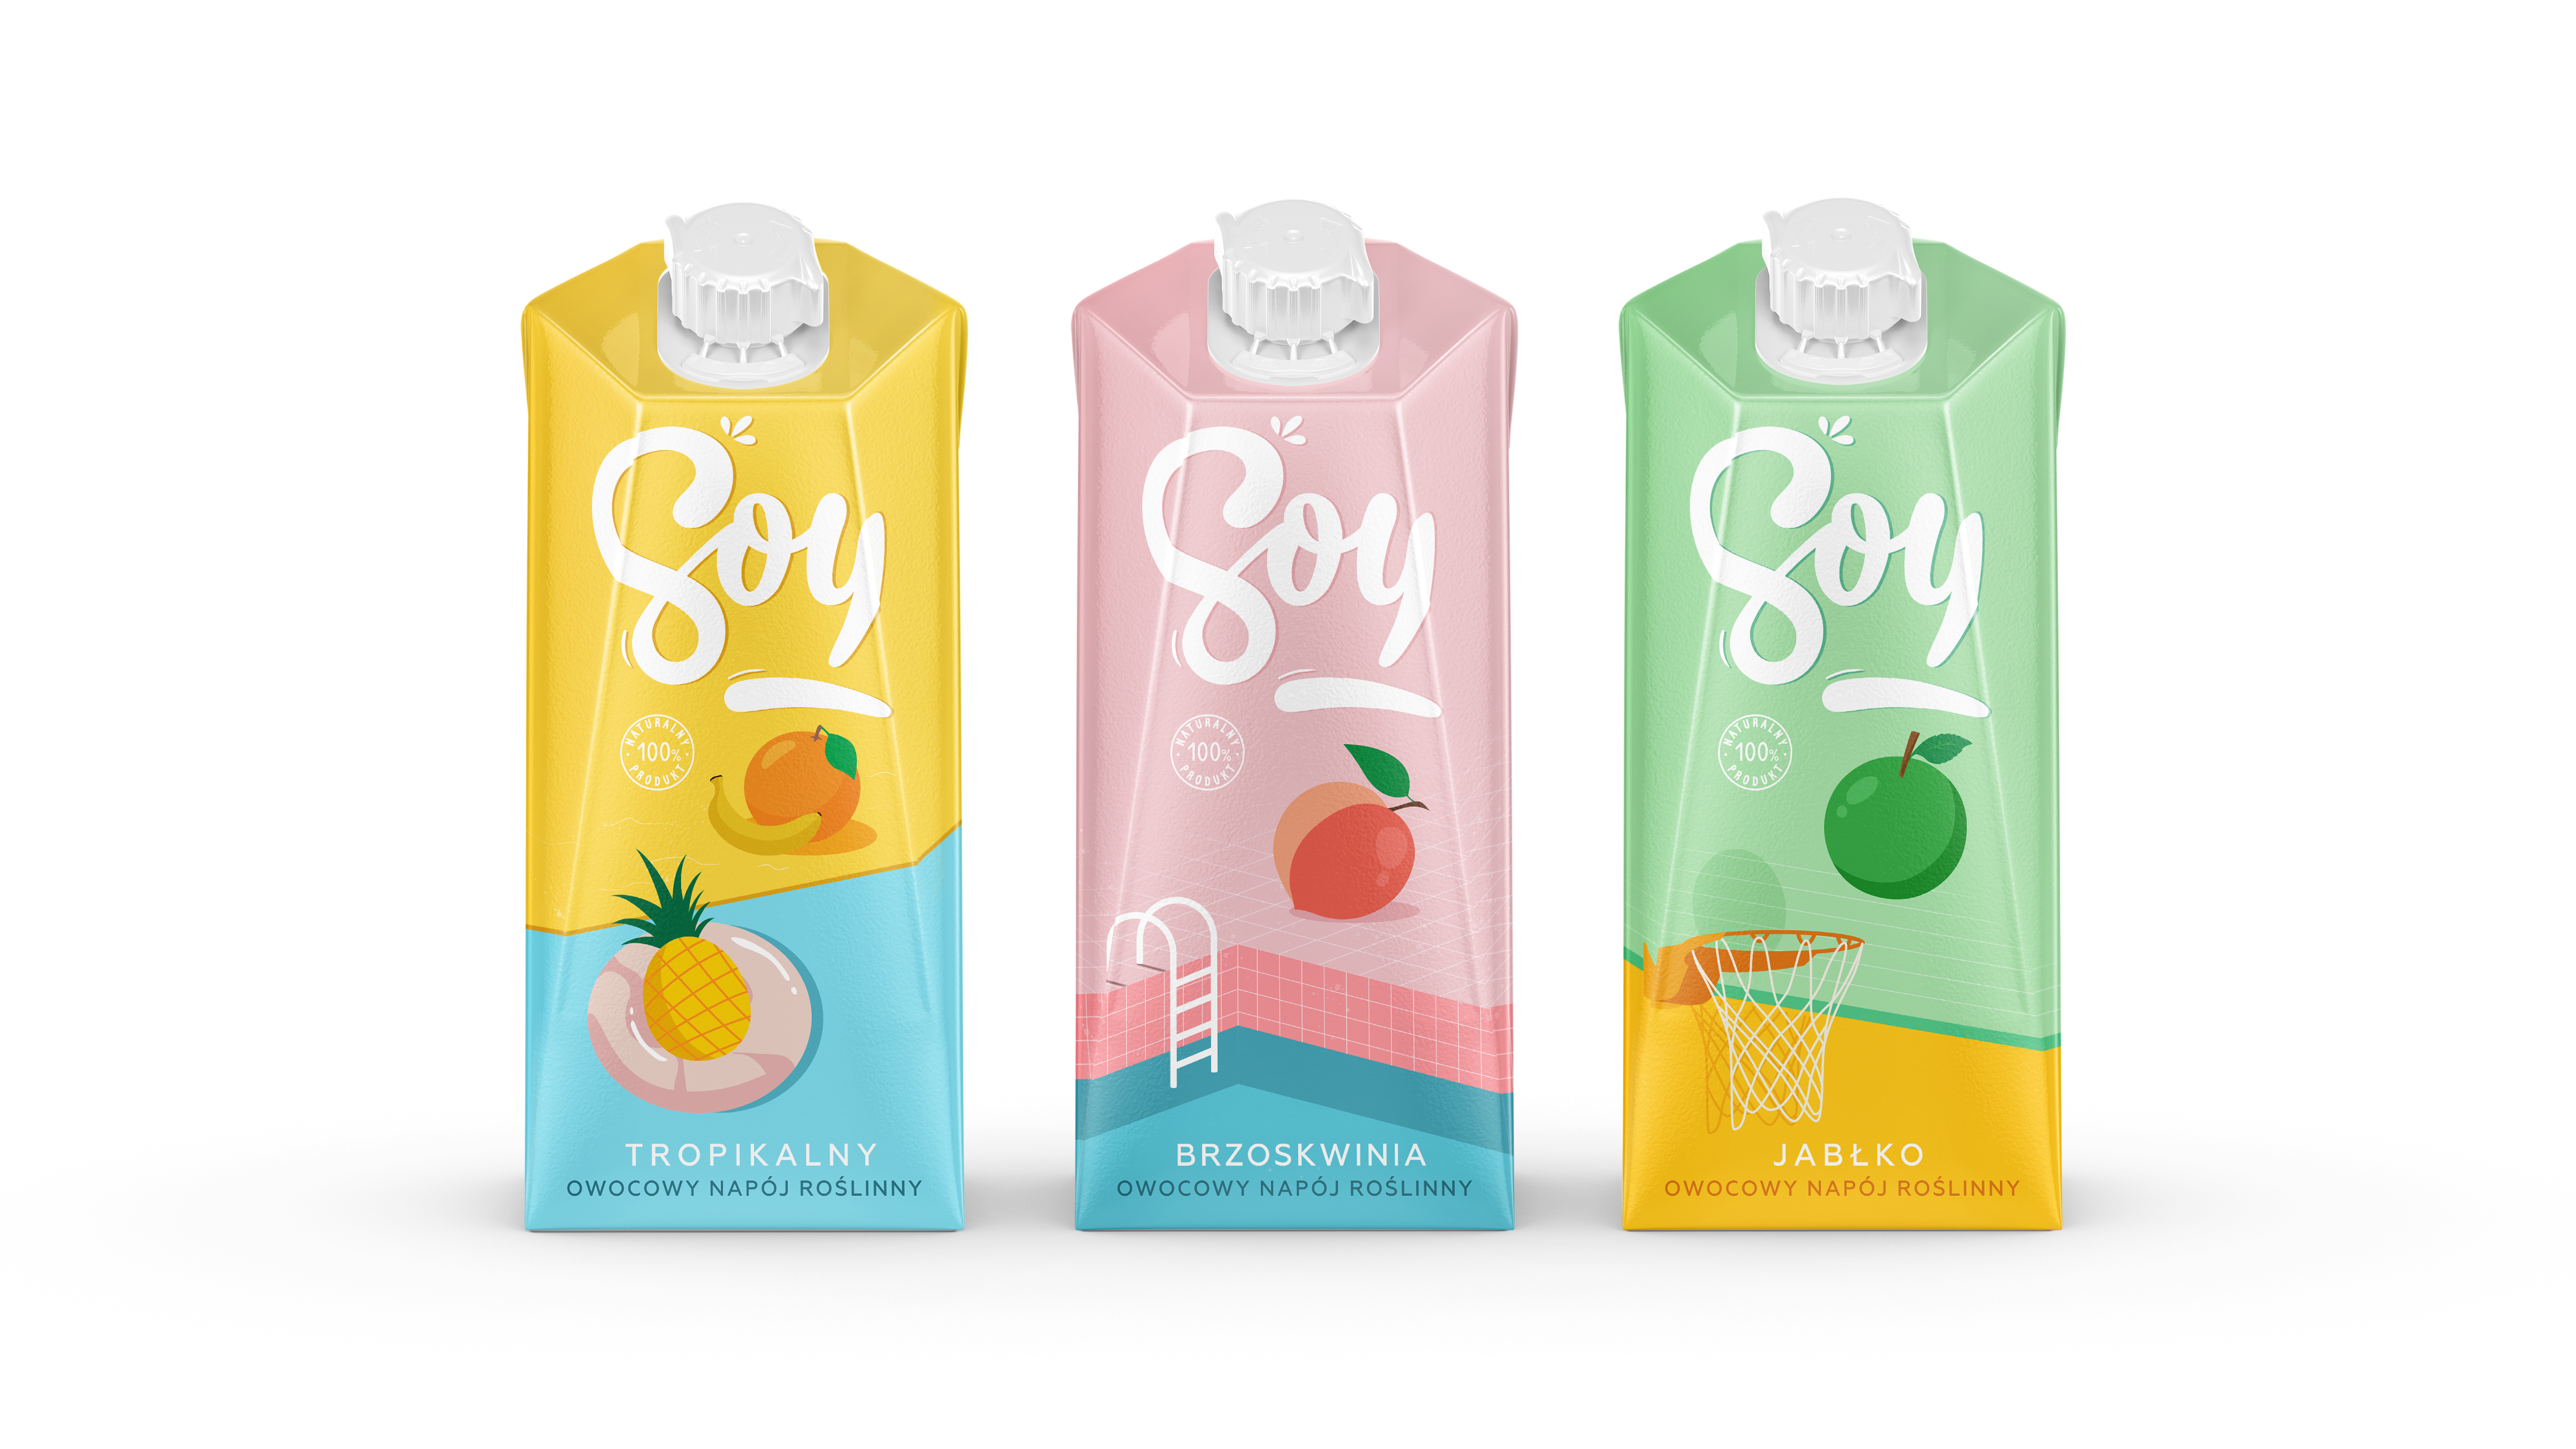 Trademark for Juicy-Soy Drink